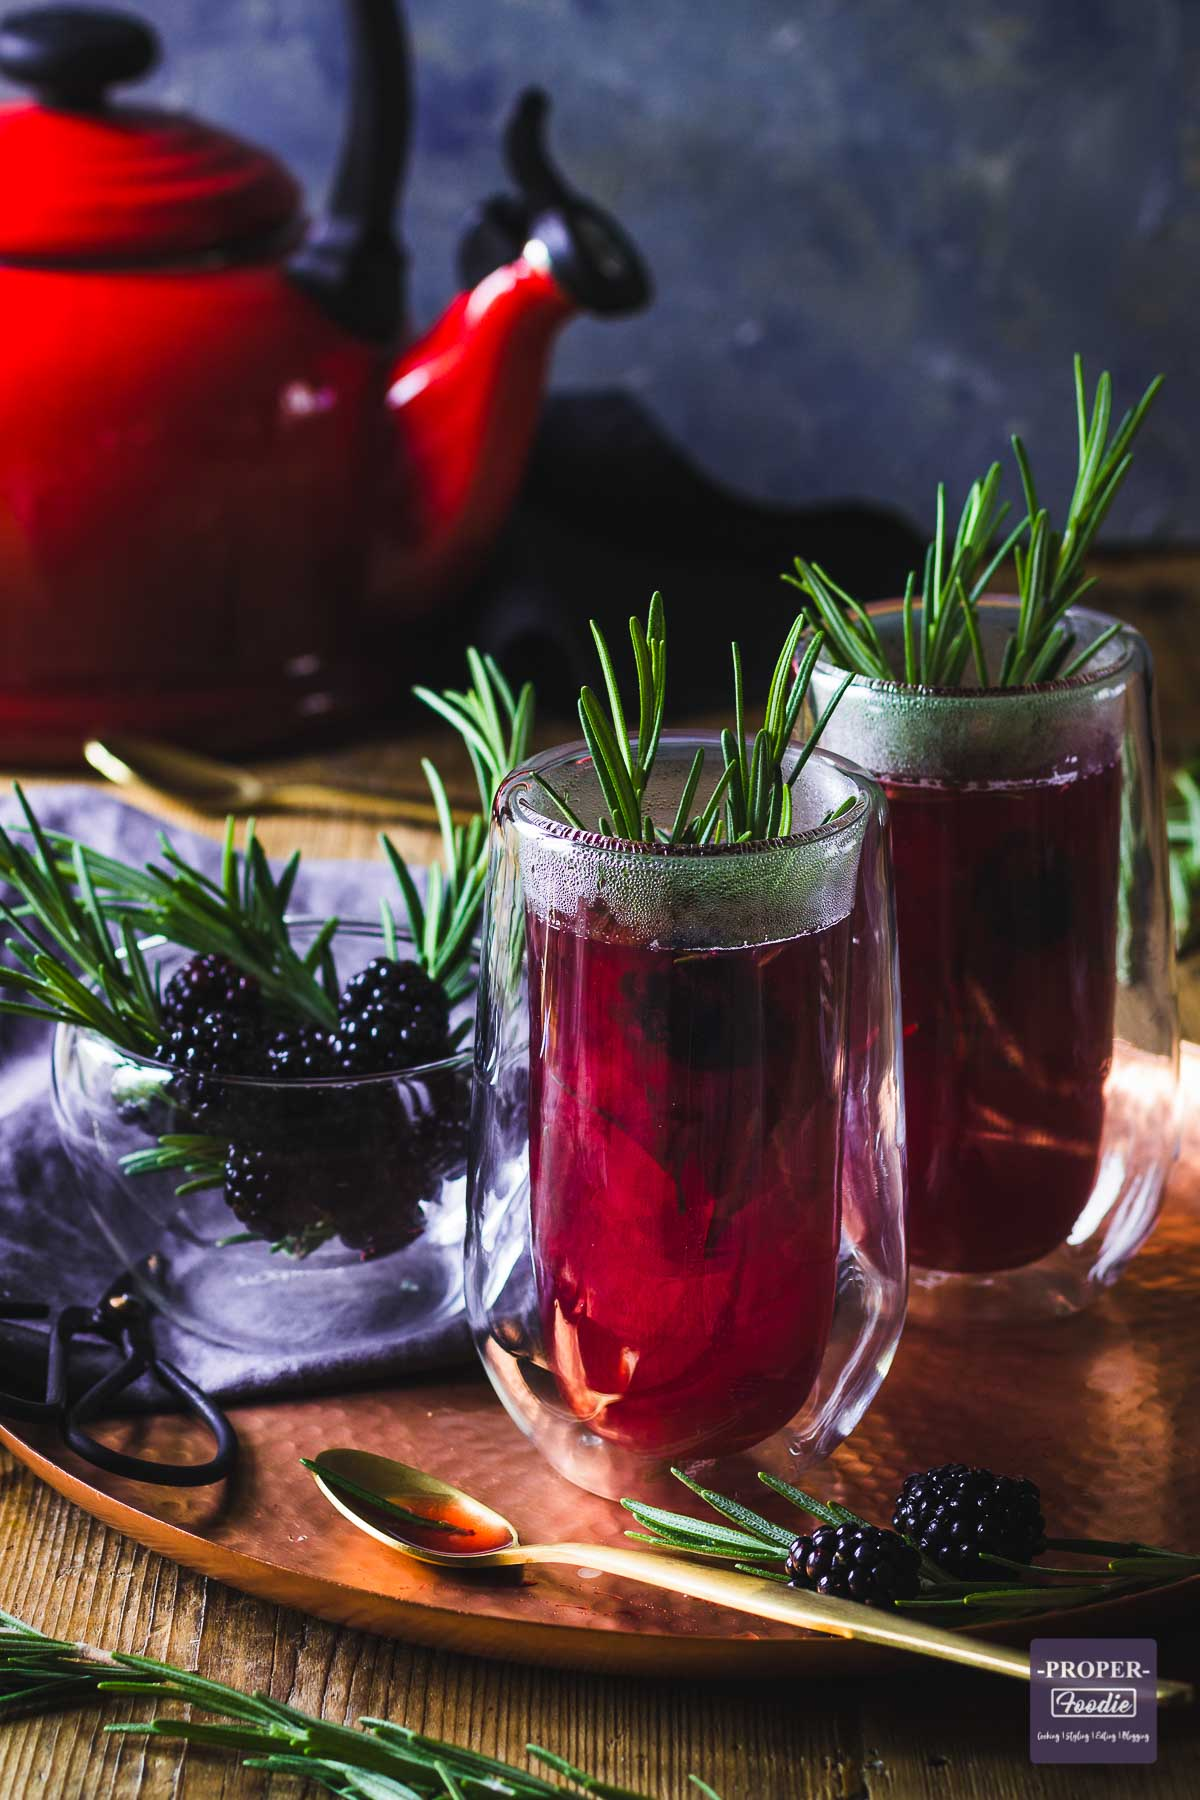 Two double wall tall glass filled with purple berry hot toddy and decorated with sprigs of rosemary.